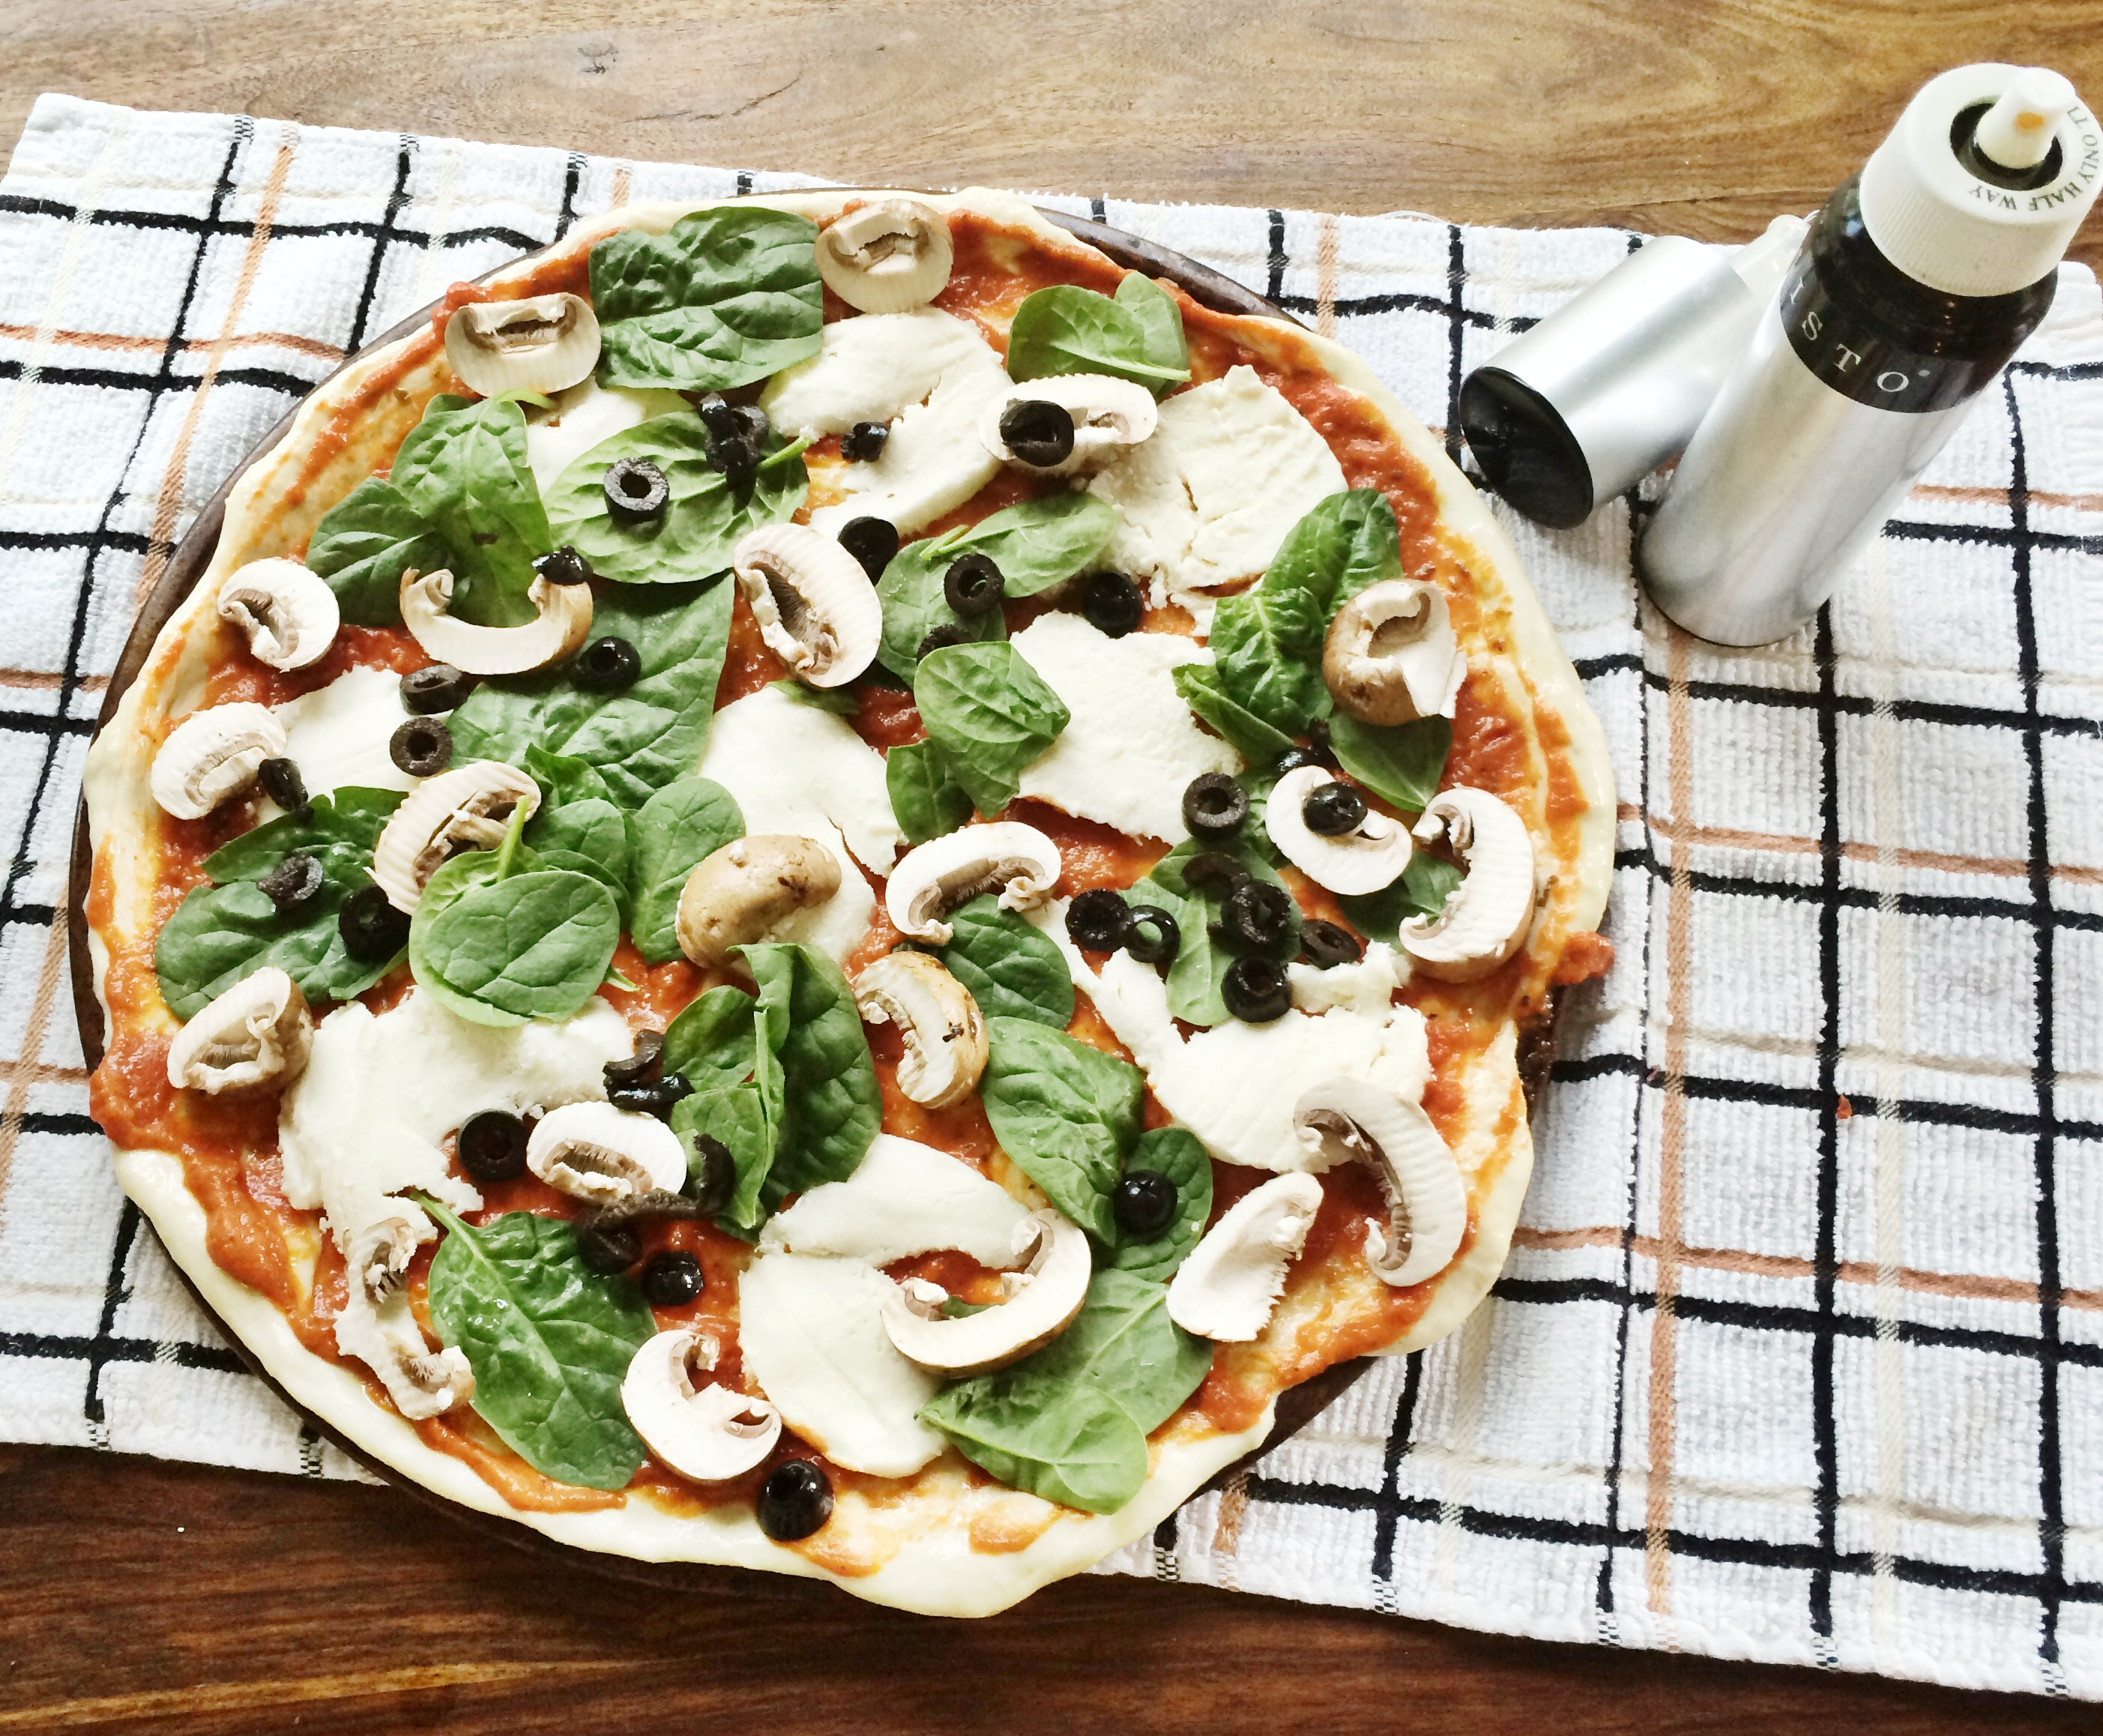 A Healthier Pizza. Spring and Chelsea